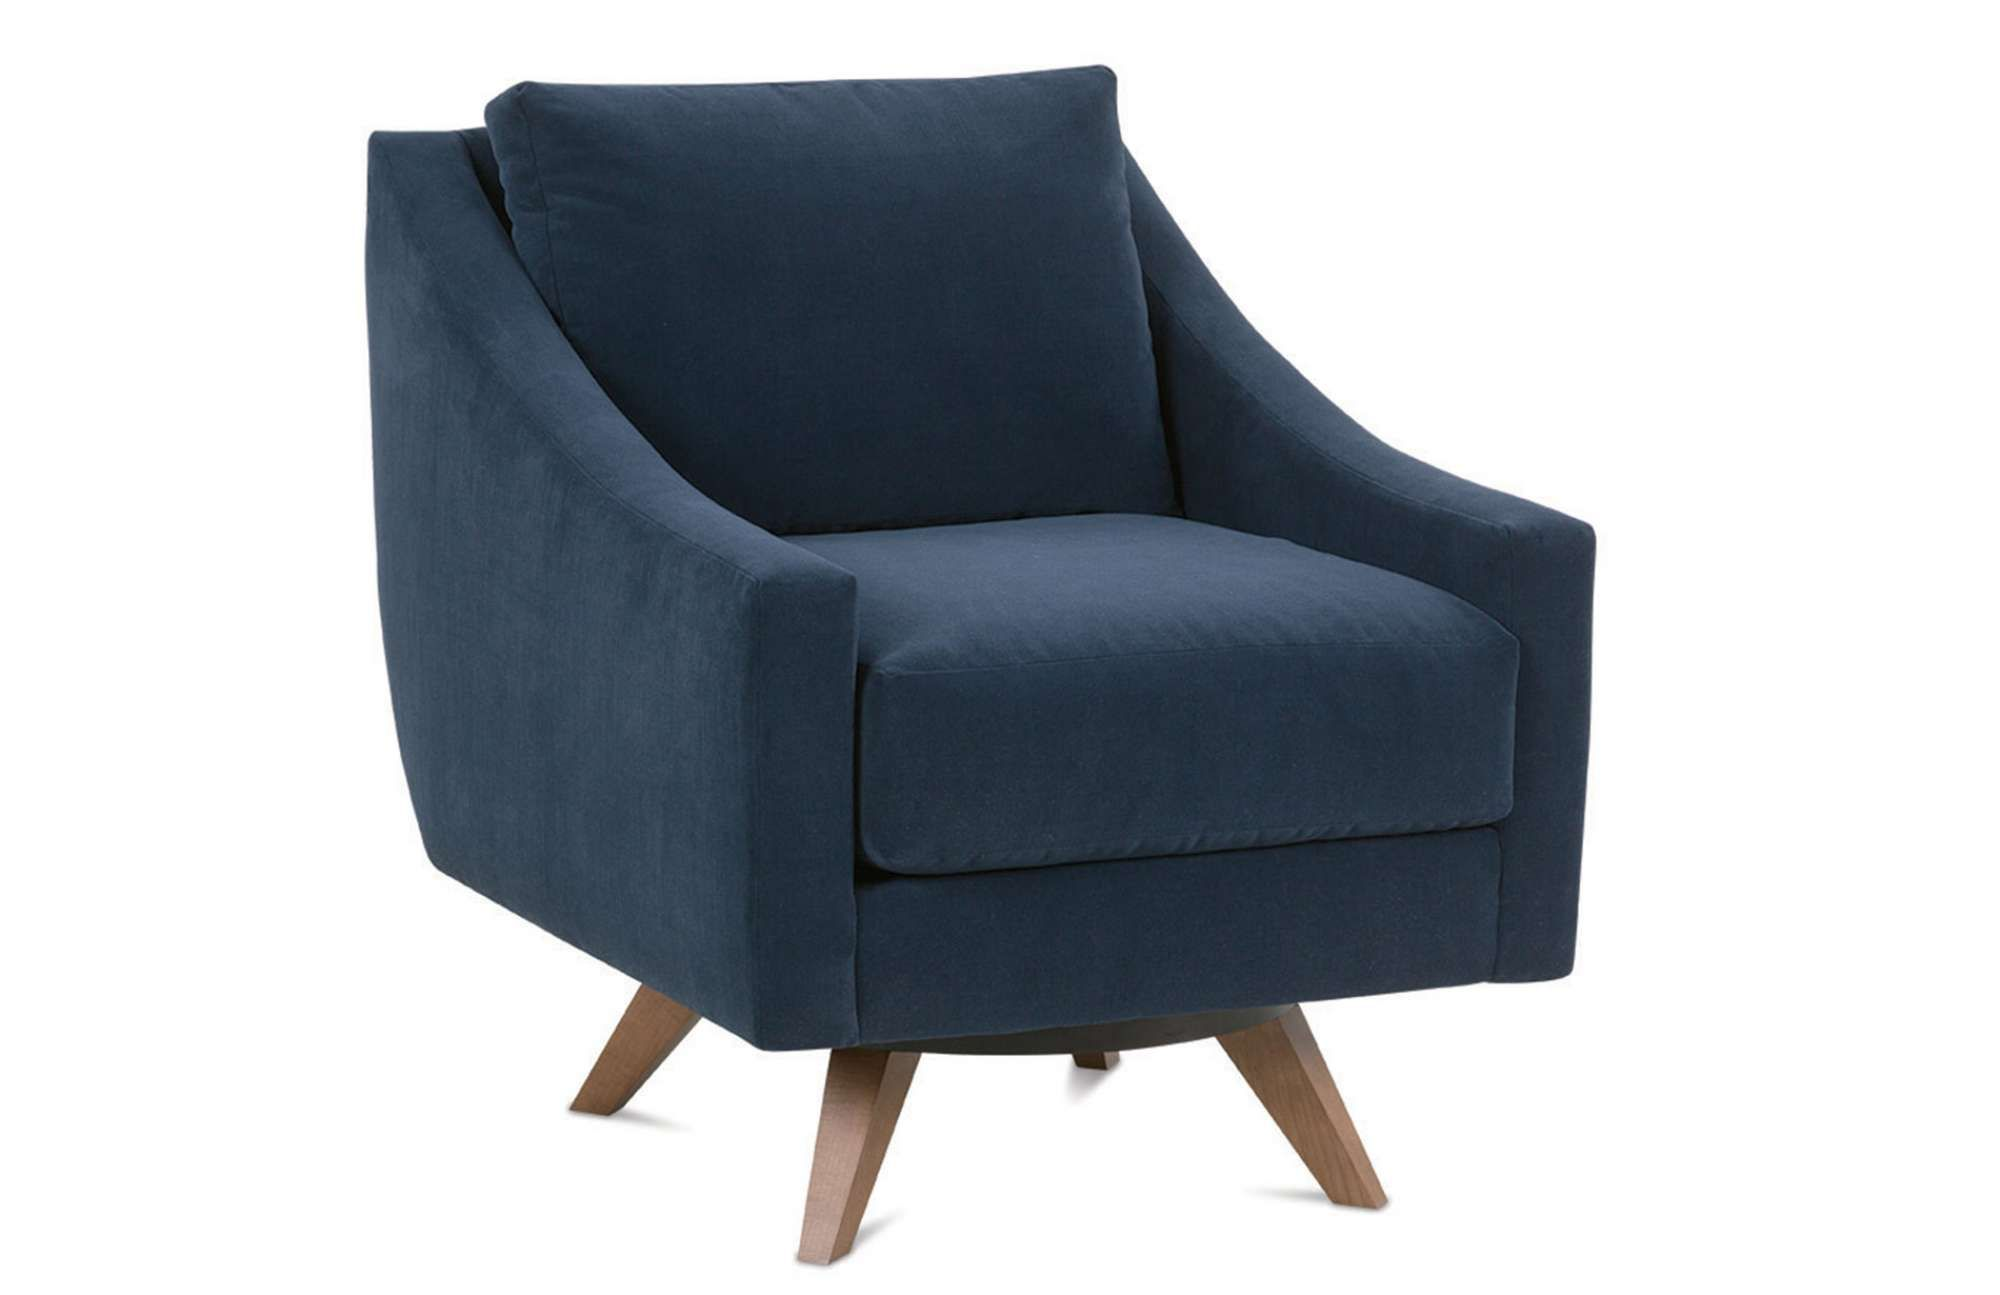 The Nash Swivel Chair is a contemporary modern design from Rowe